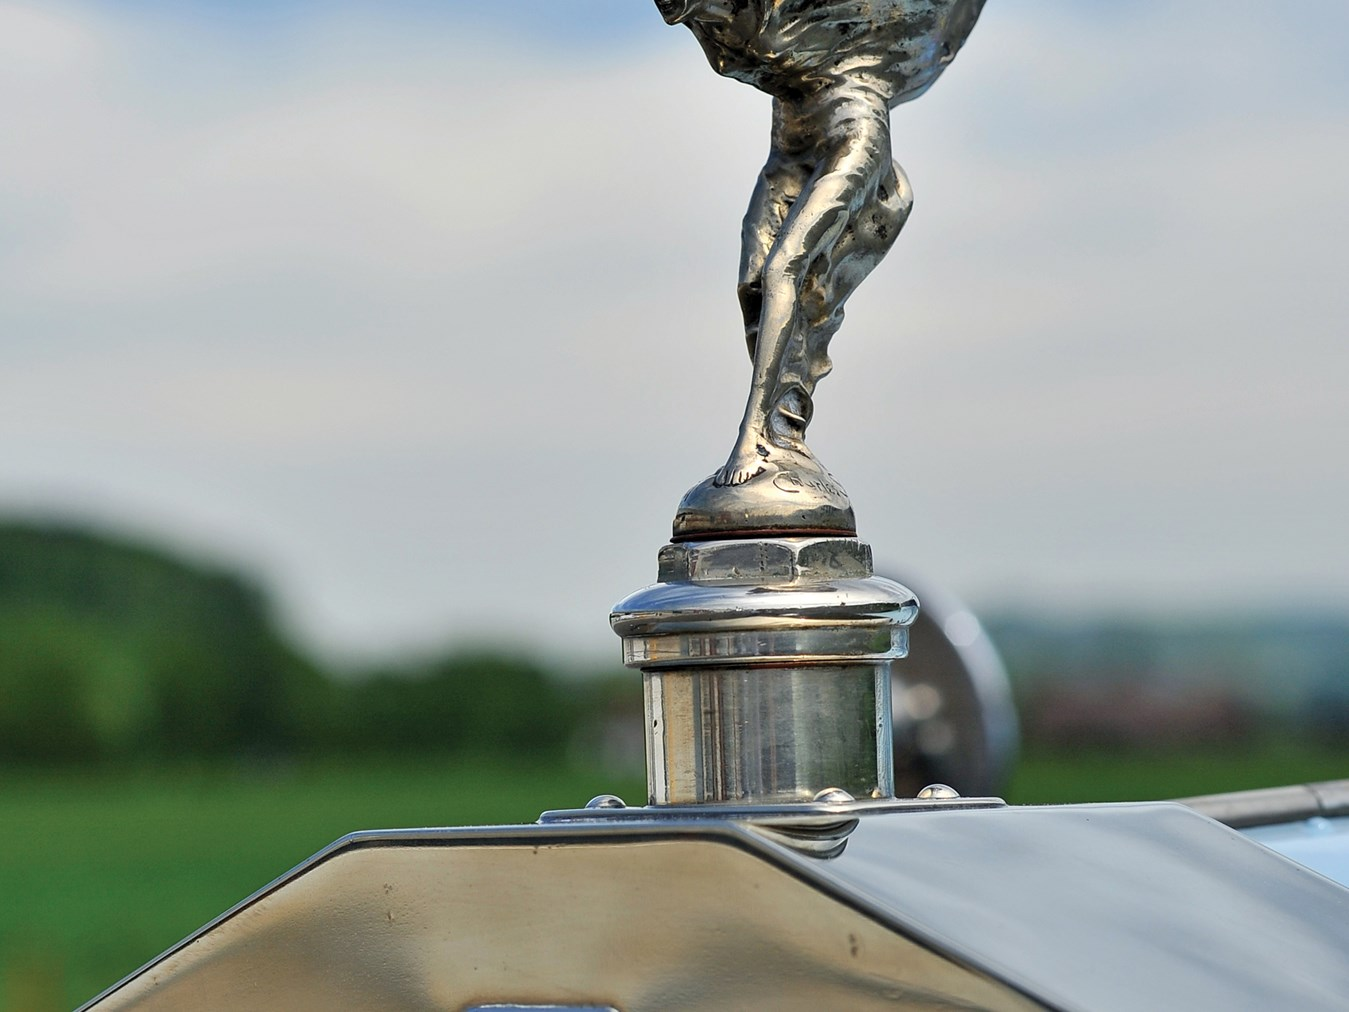 1920 Rolls-Royce 40/50 HP Silver Ghost Coupé Chauffeur by Binder